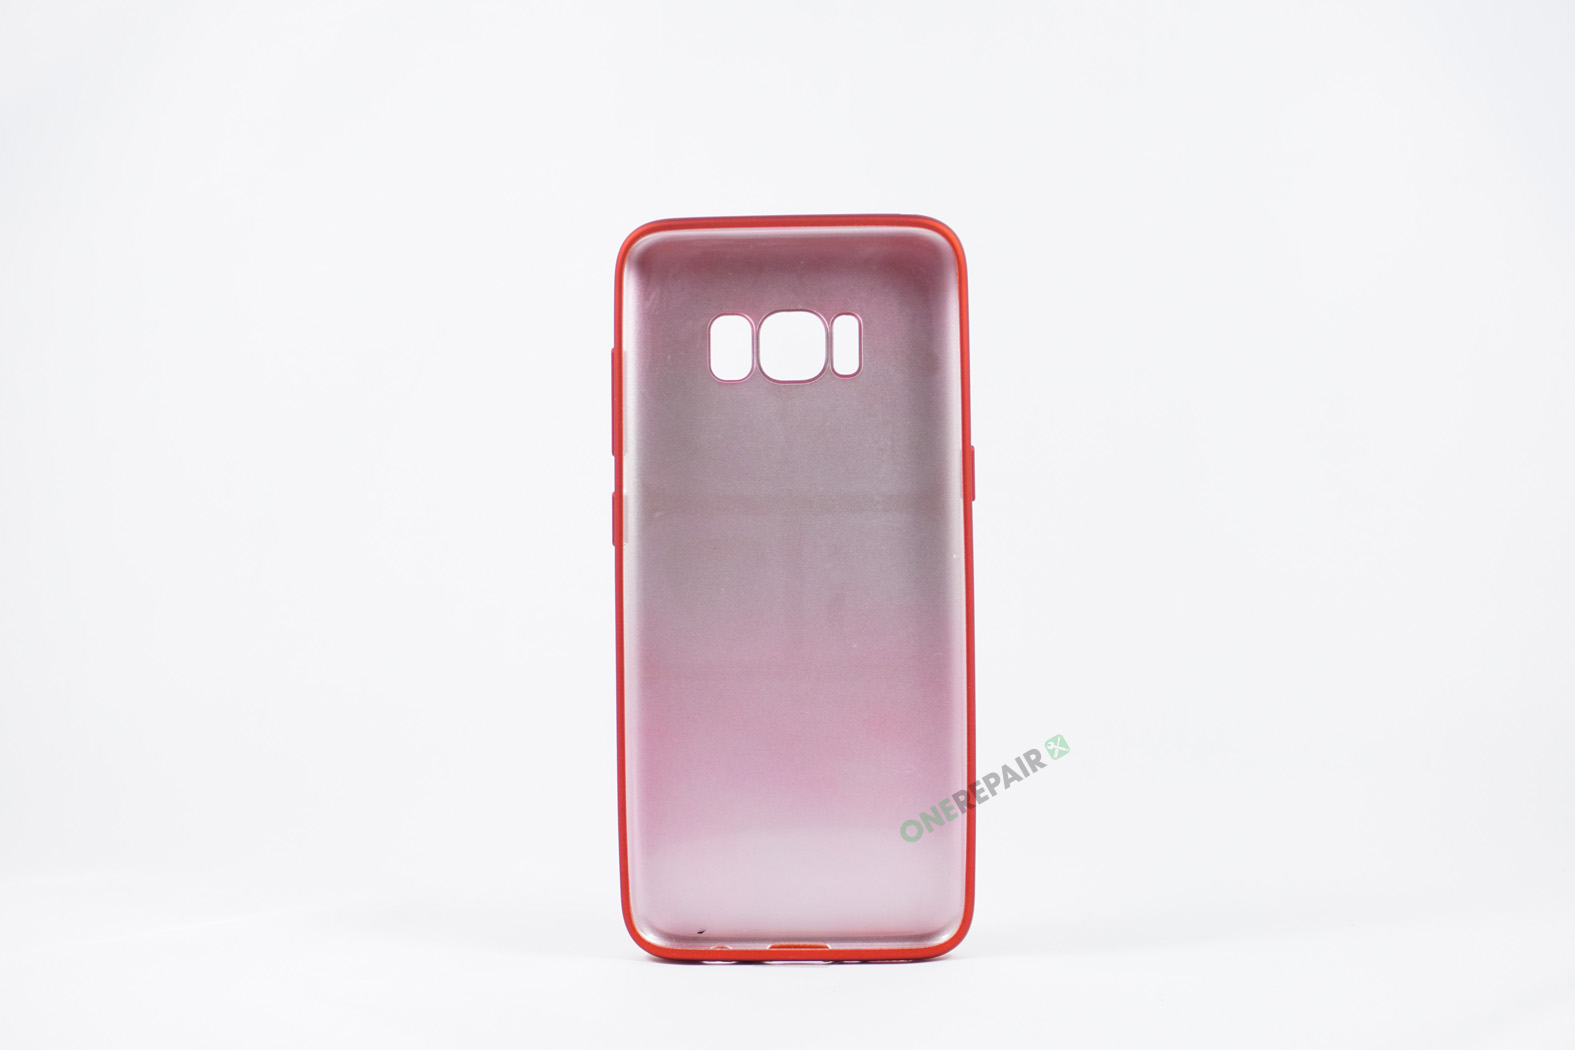 350733_Samsung_S8_2_lags_Bagcover_Cover_Roed_OneRepair_WM_00004